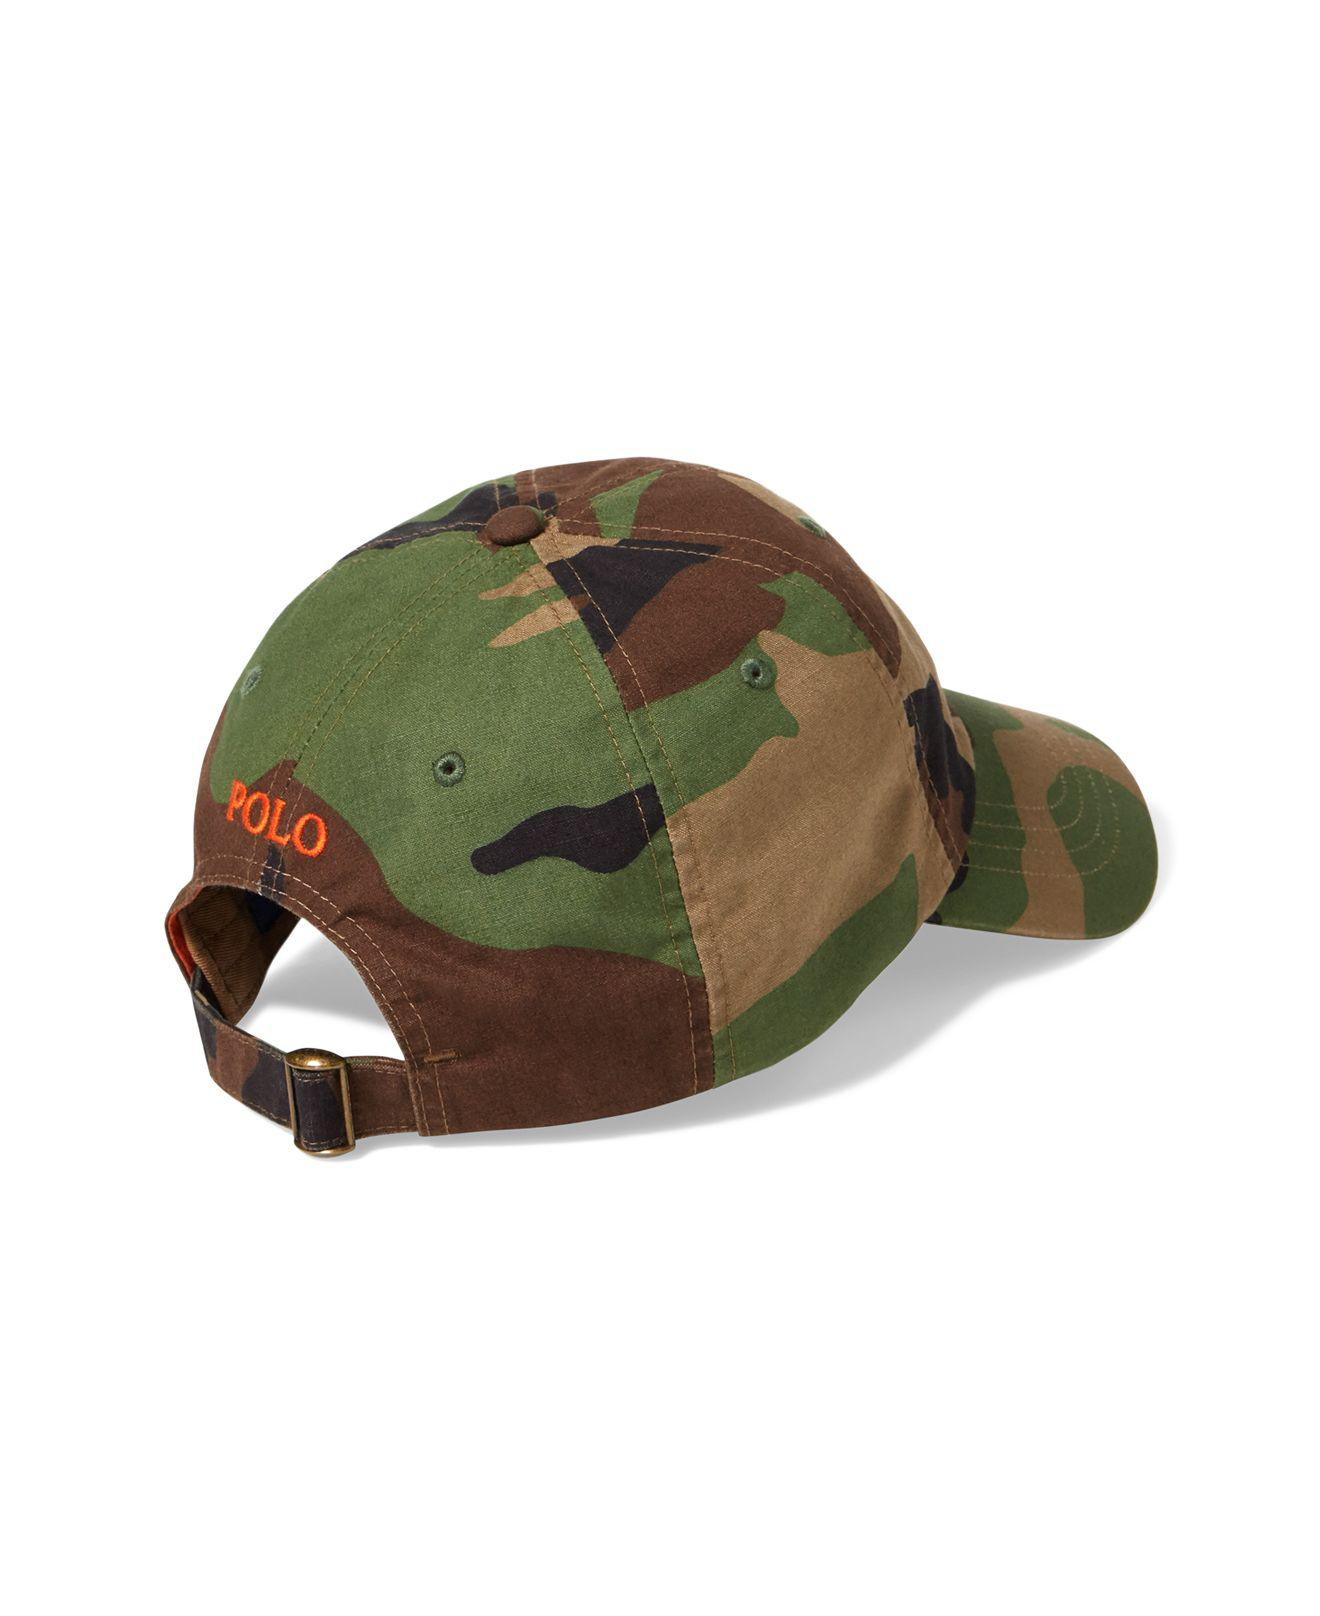 73b380af204 Lyst - Polo Ralph Lauren Camouflage Classic Baseball Hat in Green ...